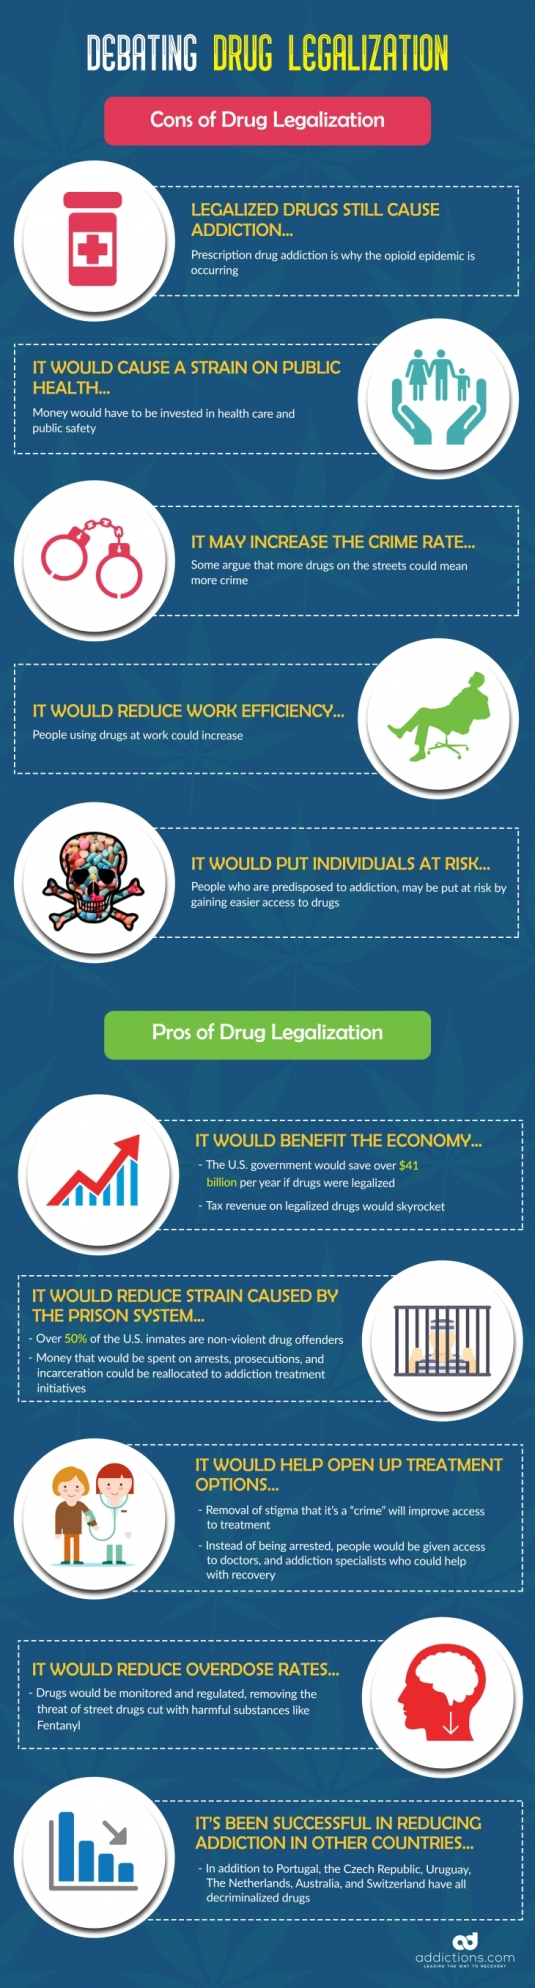 Oct-13-Is-Drug-Legalization-the-Answer-Section-3-730x2713.jpg